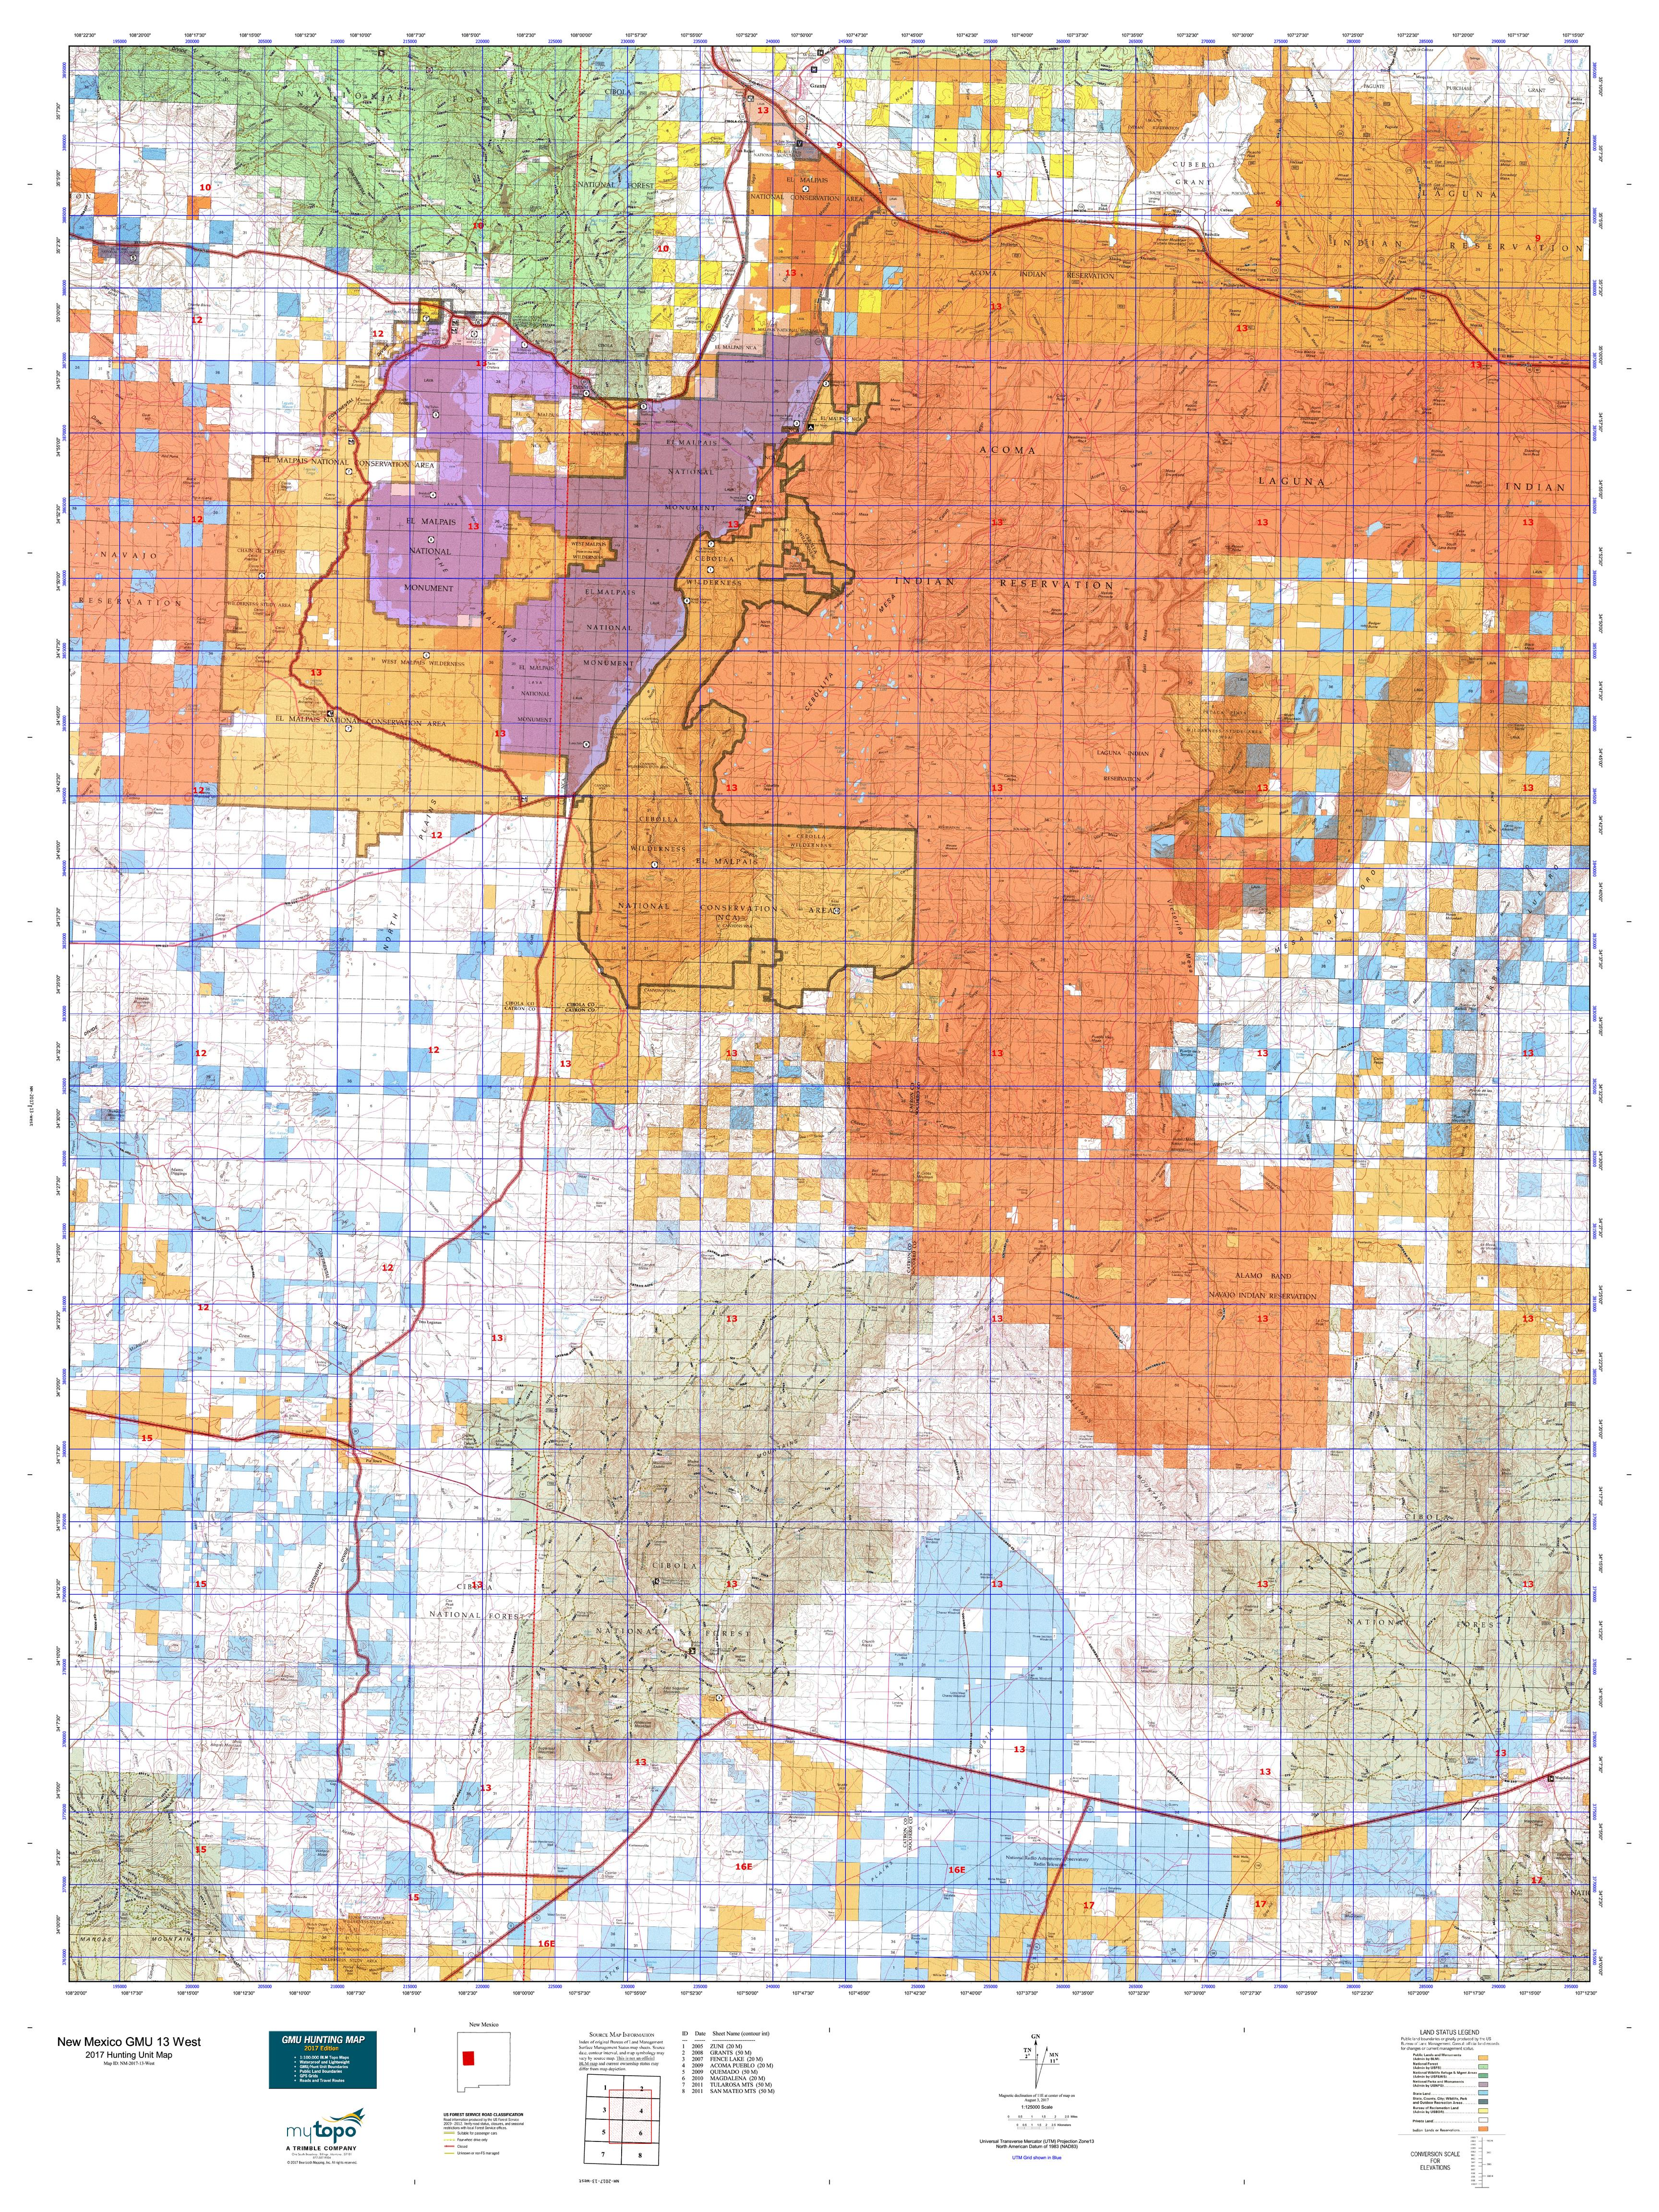 New Mexico GMU East Map MyTopo - Us west map